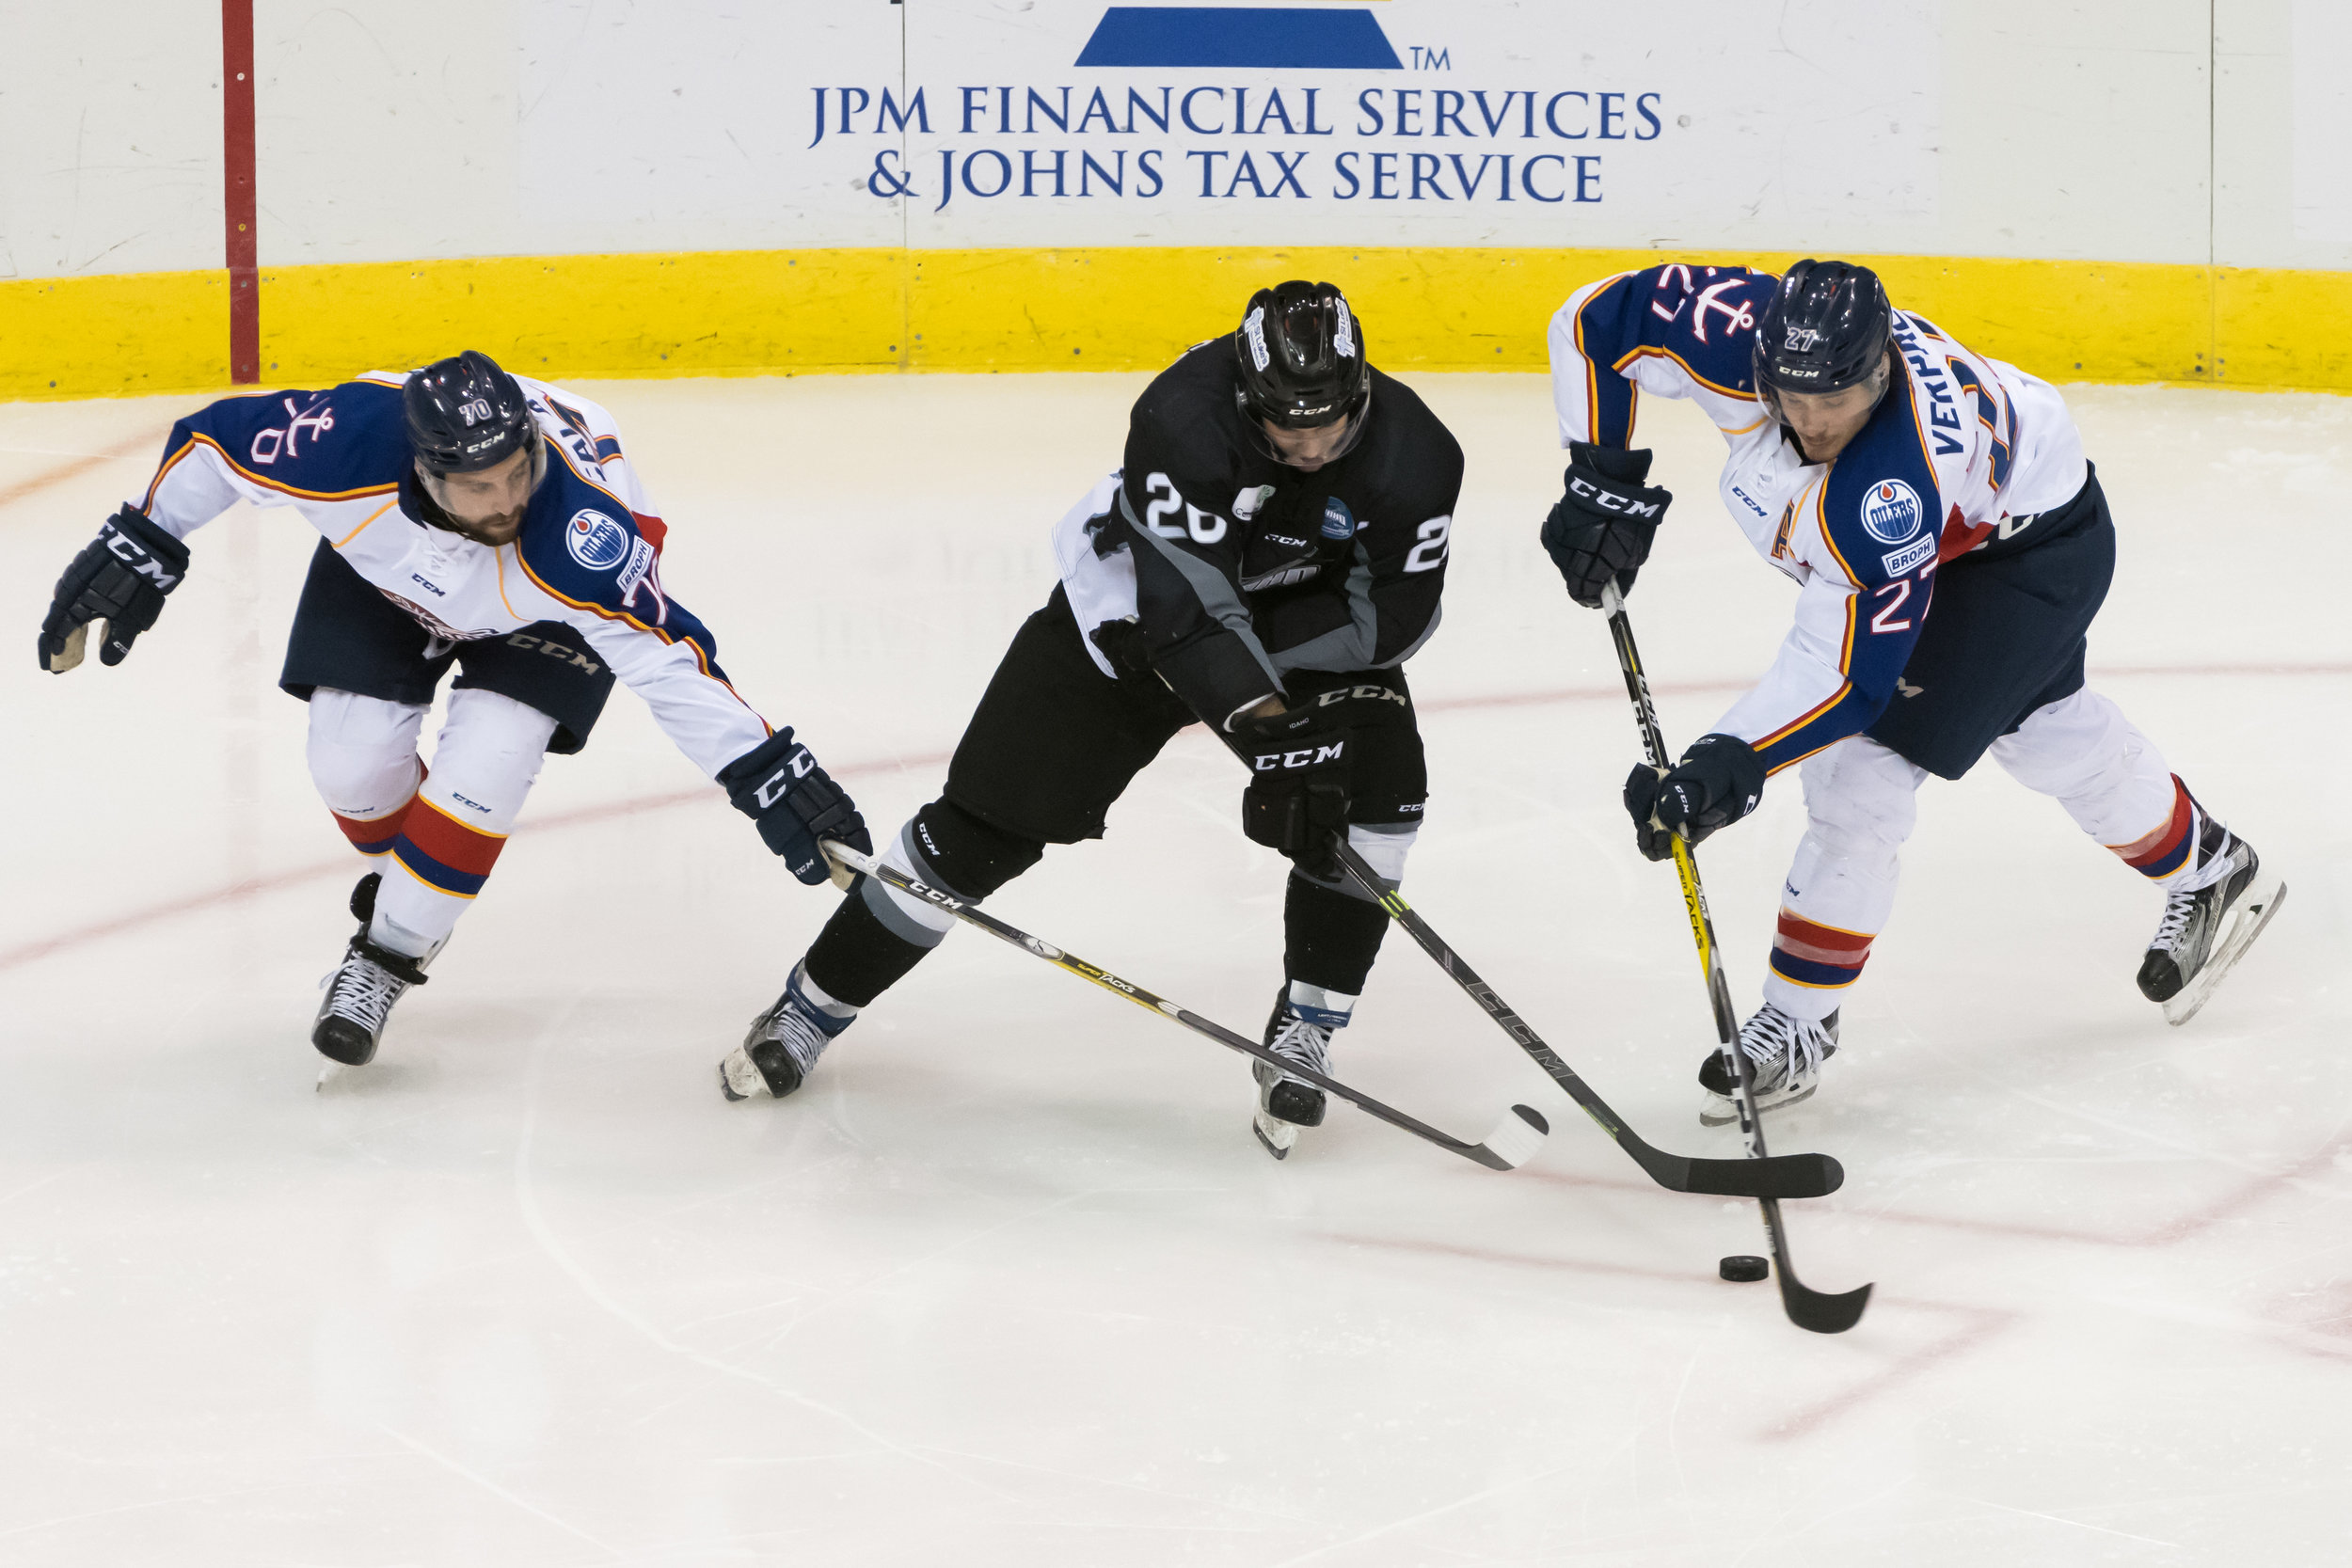 Idaho Steelheads forward Rob Linsmayer (26), Norfolk Admirals defenseman Anthony Calabrese (70) and defenseman Gabriel Verpaelst (27) fight for the puck during Wednesday night's game at the Scope Arena in Norfolk, Virginia. Idaho defeated Norfolk 6-4.